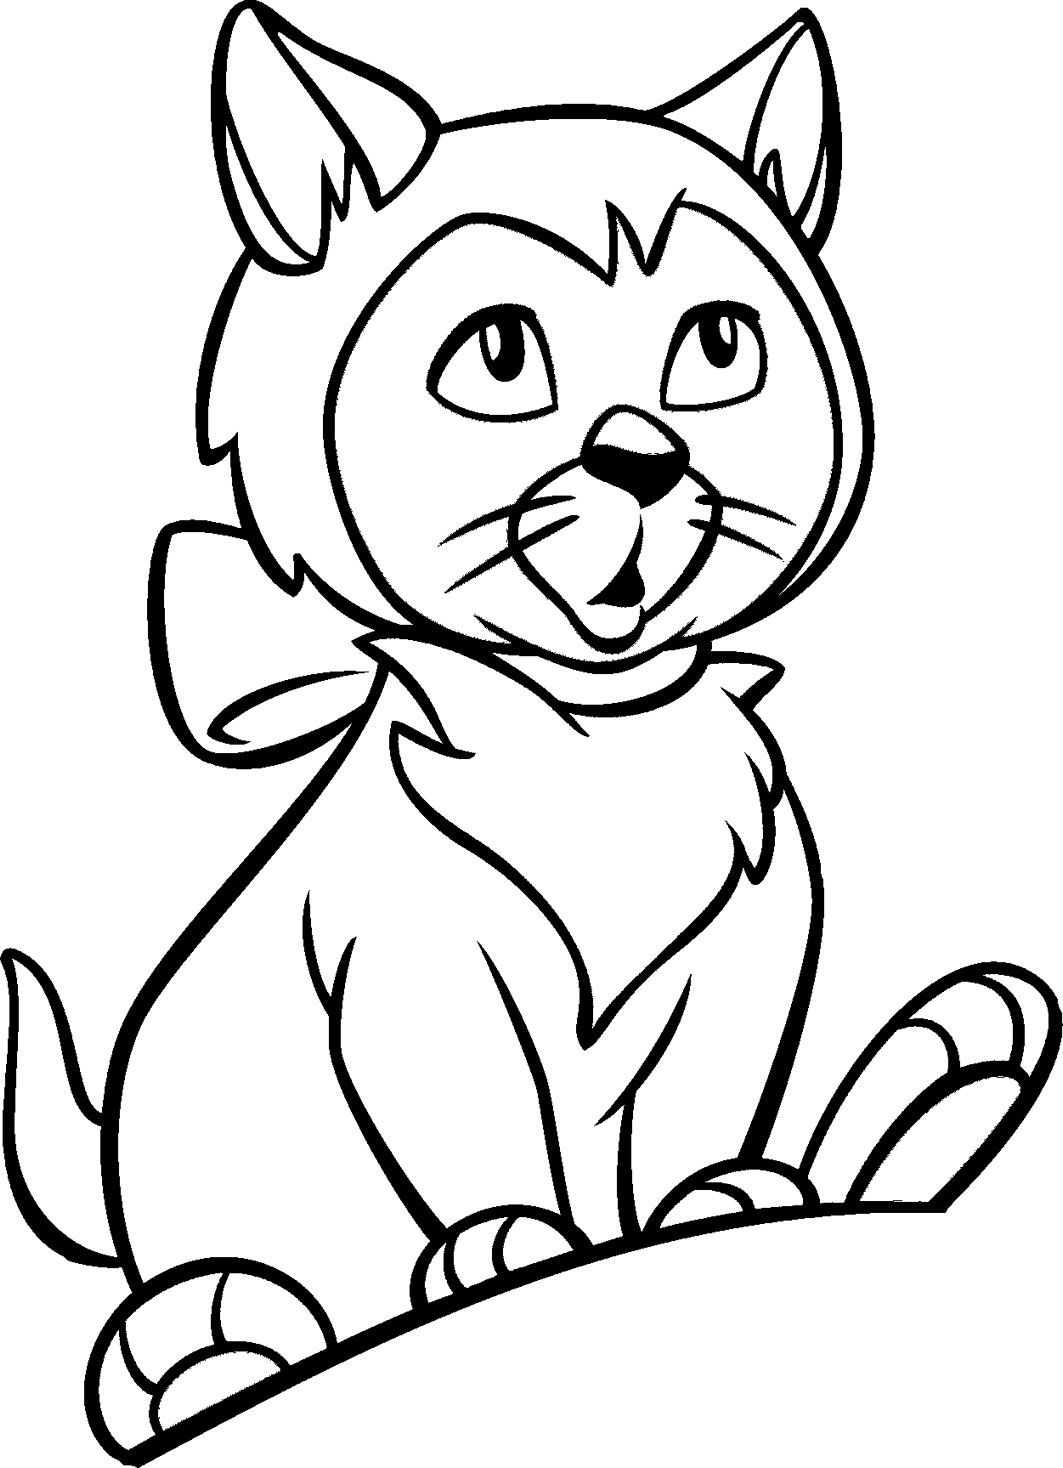 Pin by shreya thakur on free coloring pages pinterest cat colors